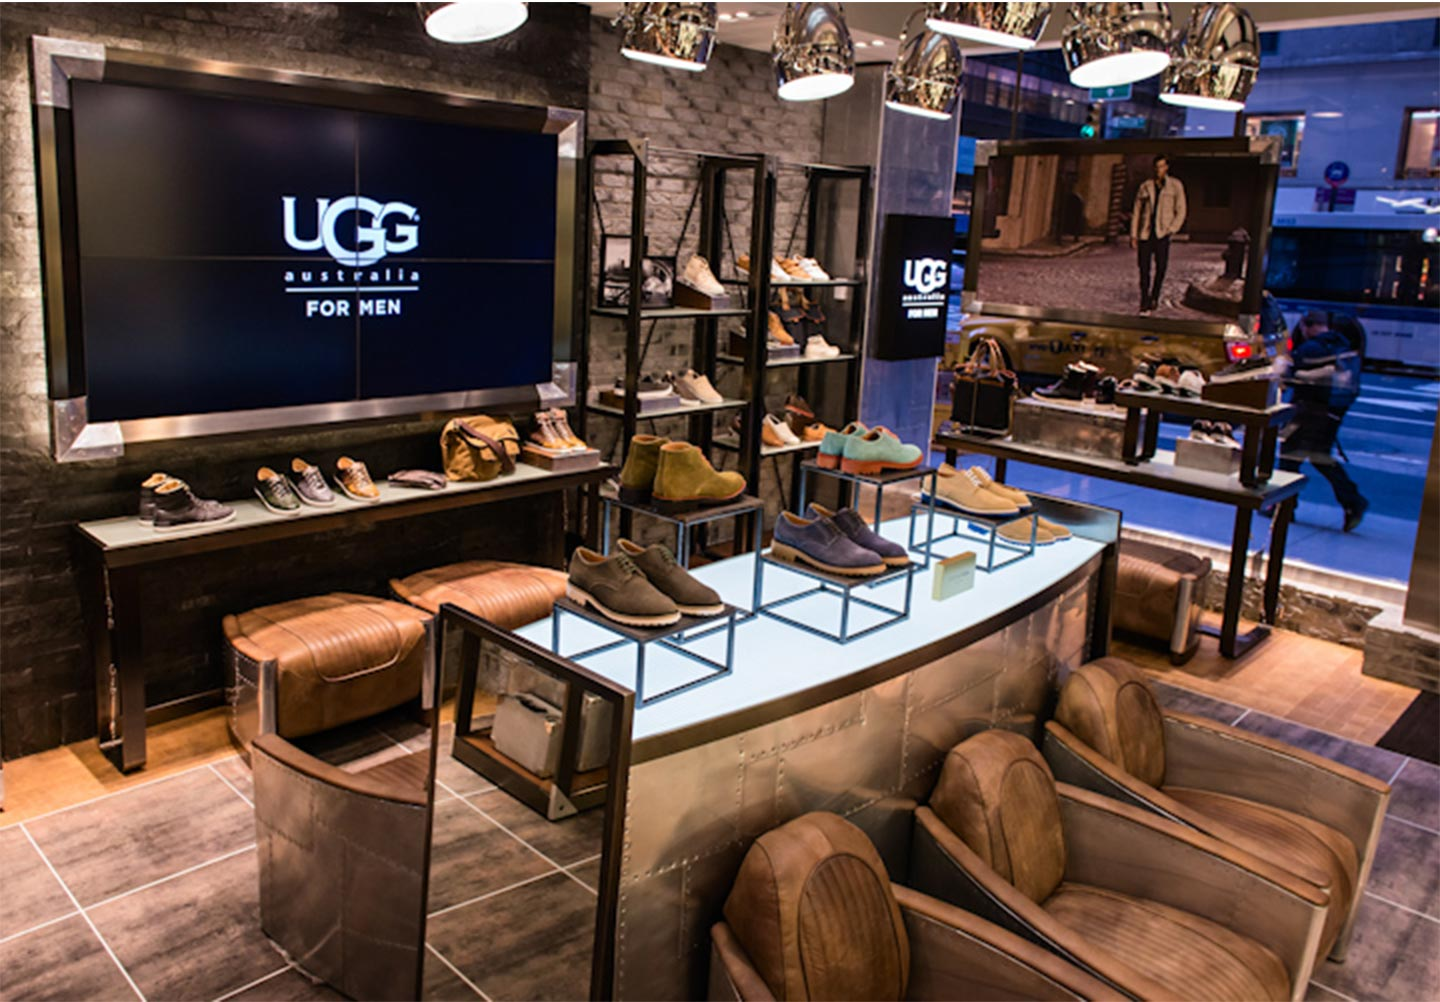 ugg store 5th avenue nyc